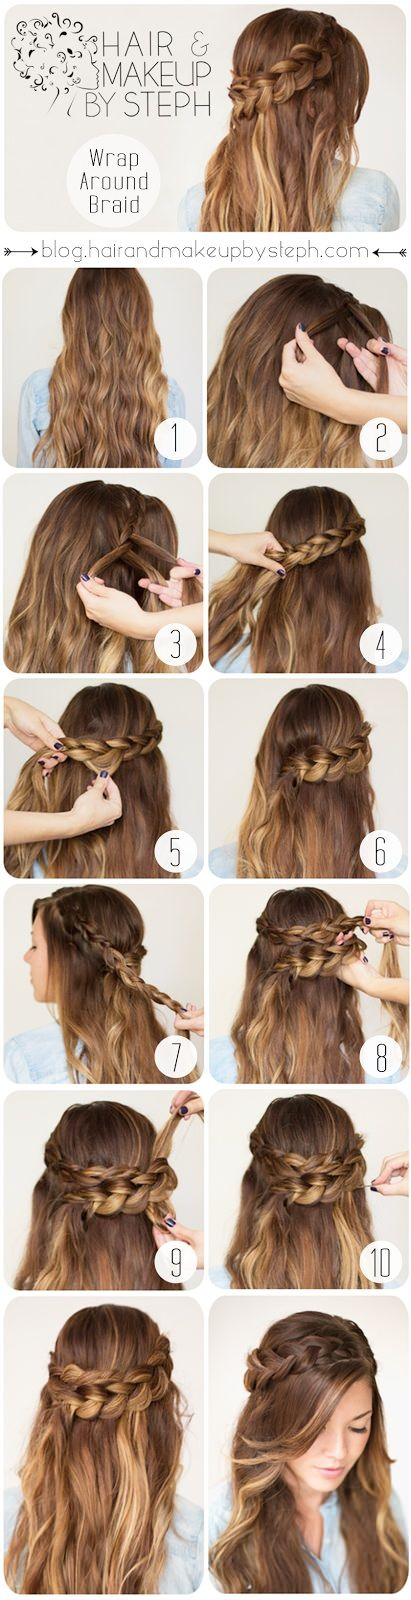 Autumn Hair: 6 Bonfire-Approved Hairstyles